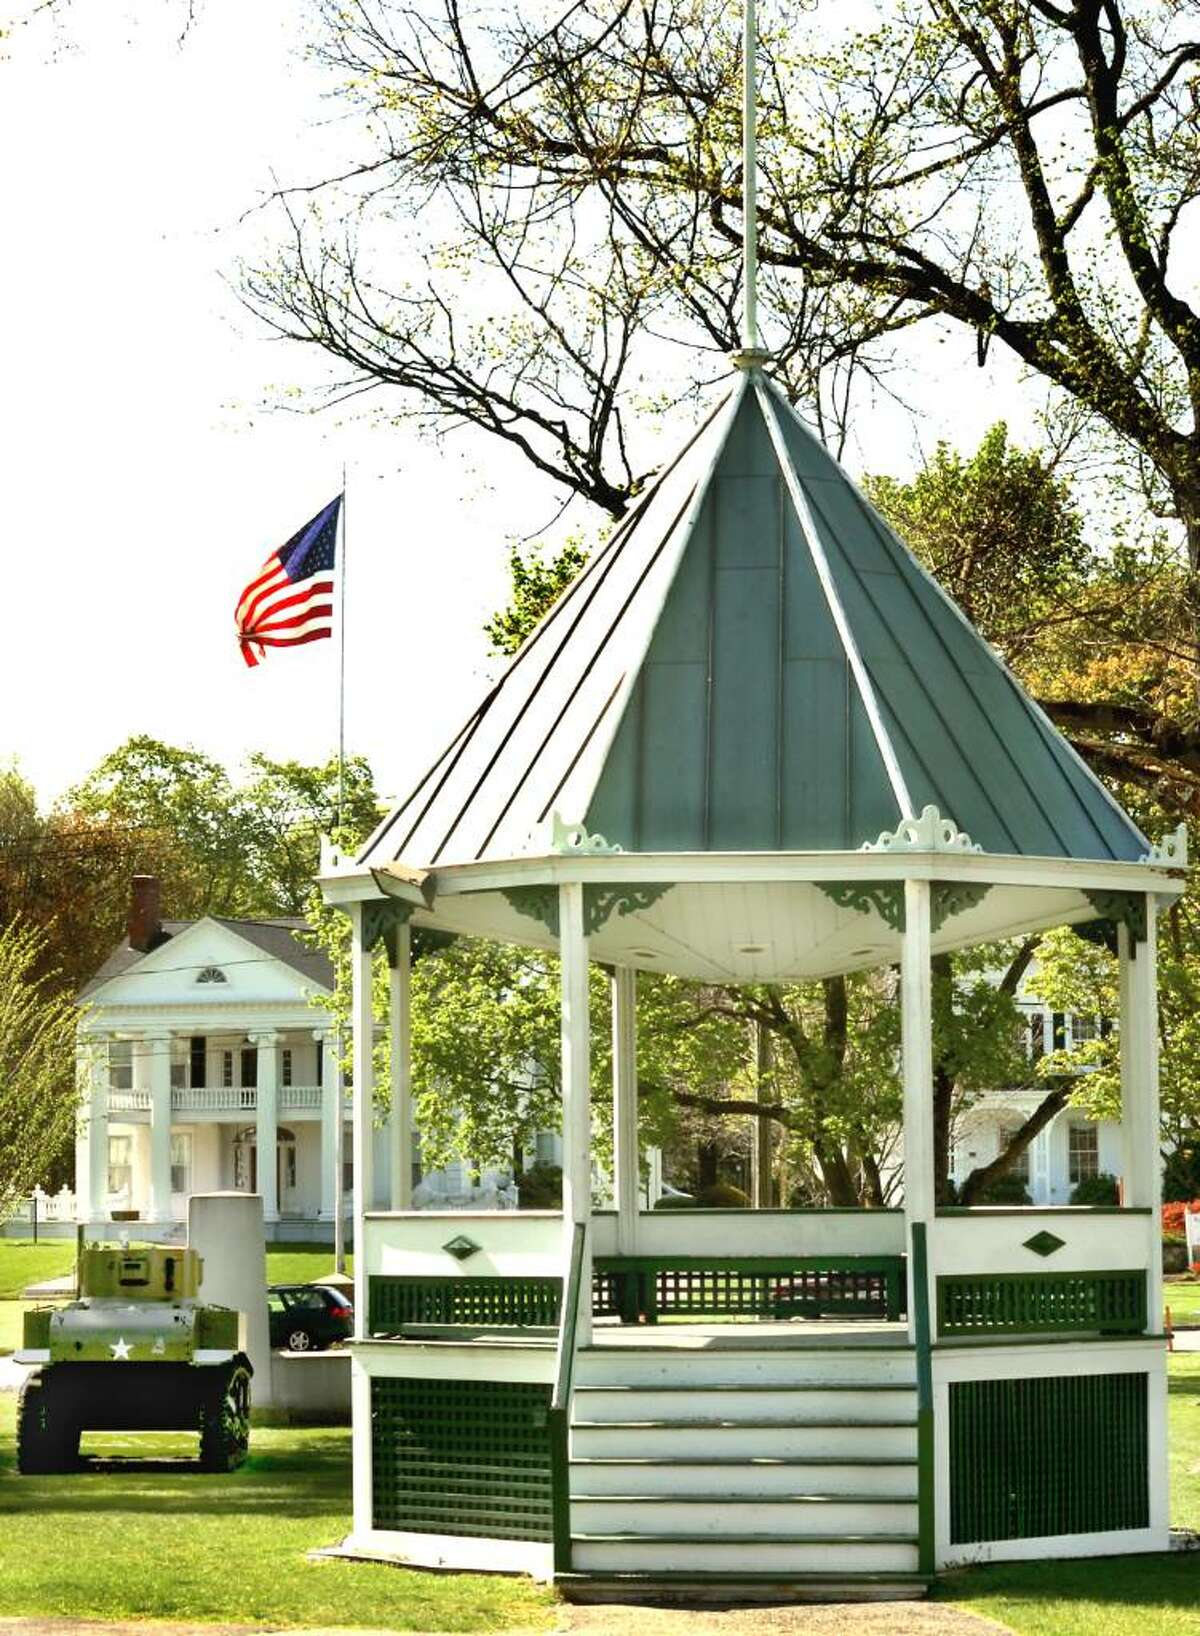 The bandstand on the village green in New Milford on Friday, April 23, 2010.